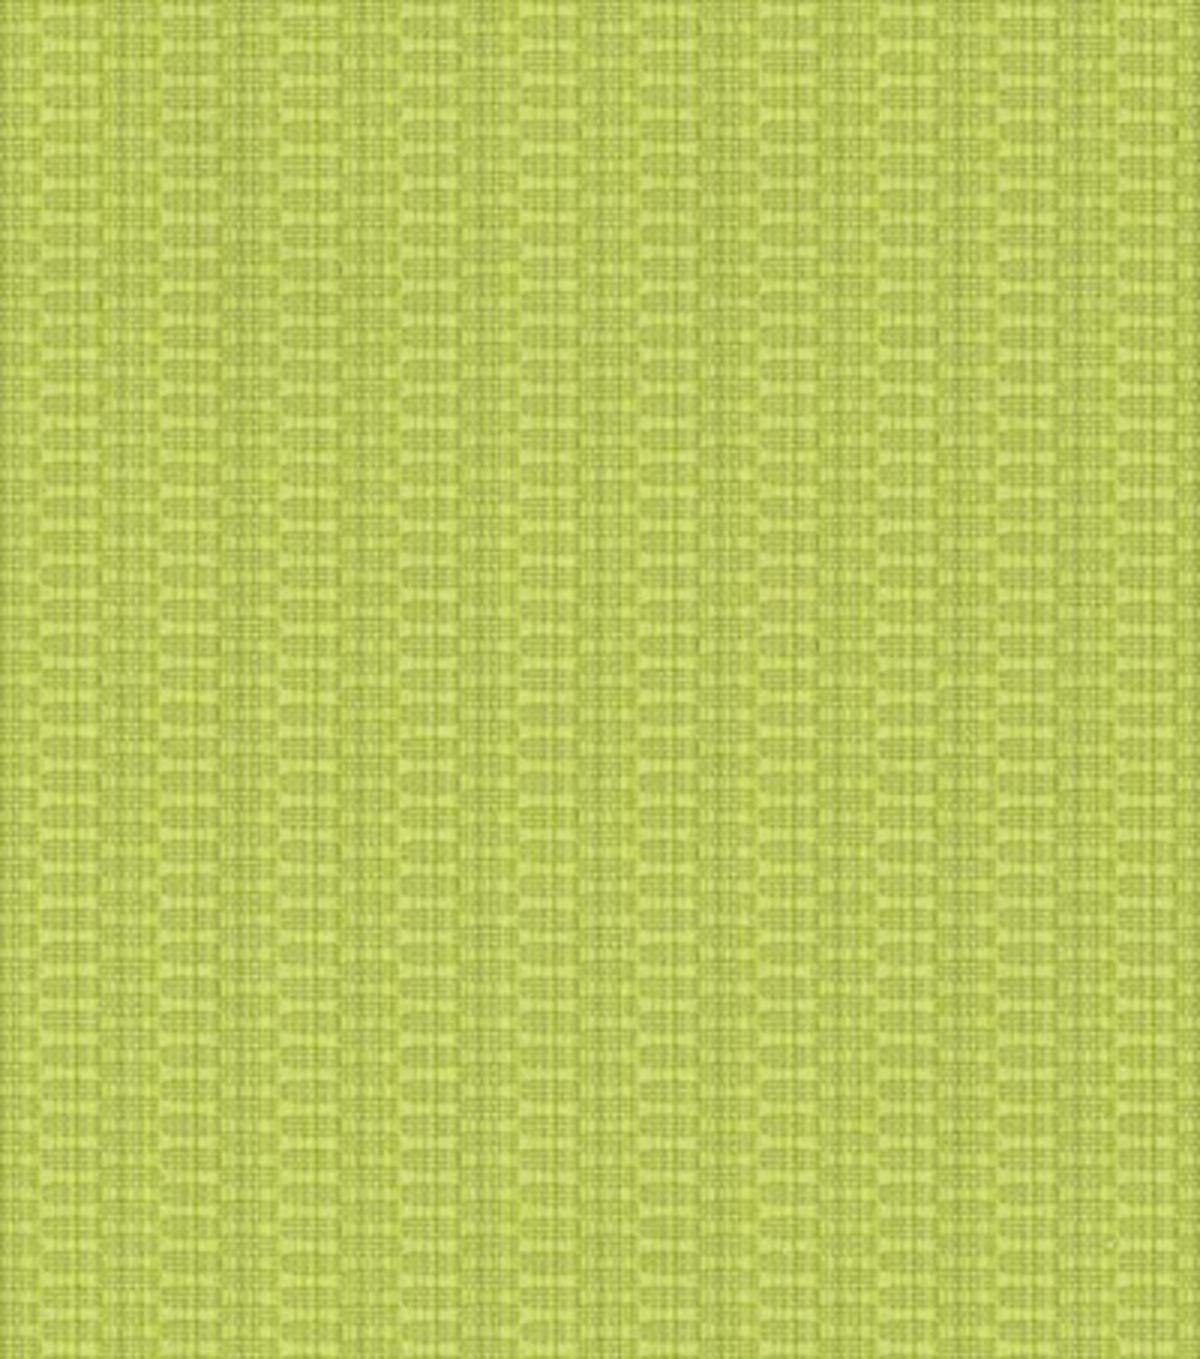 Home Decor 8\u0022x8\u0022 Fabric Swatch-Dena Dream Weaver Citrus